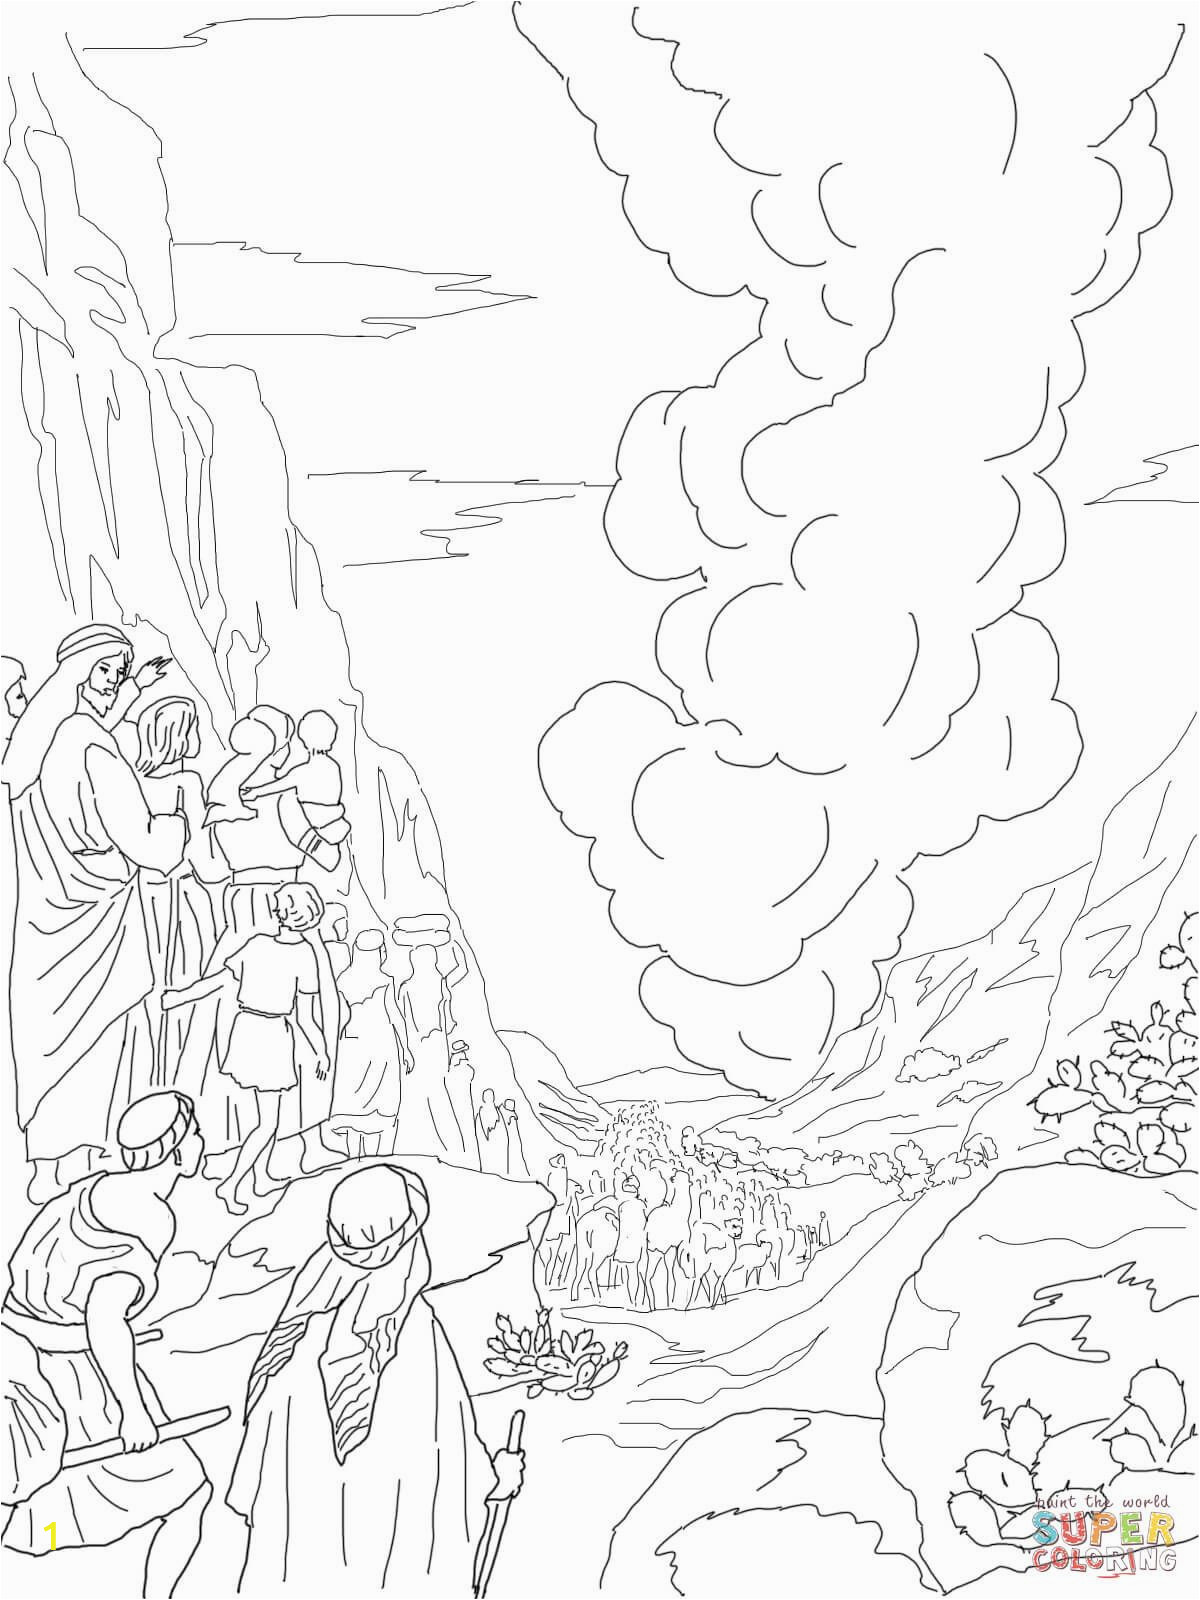 Pillar Of Cloud and Fire Coloring Pages Pillar Of Fire and Cloud Super Coloring